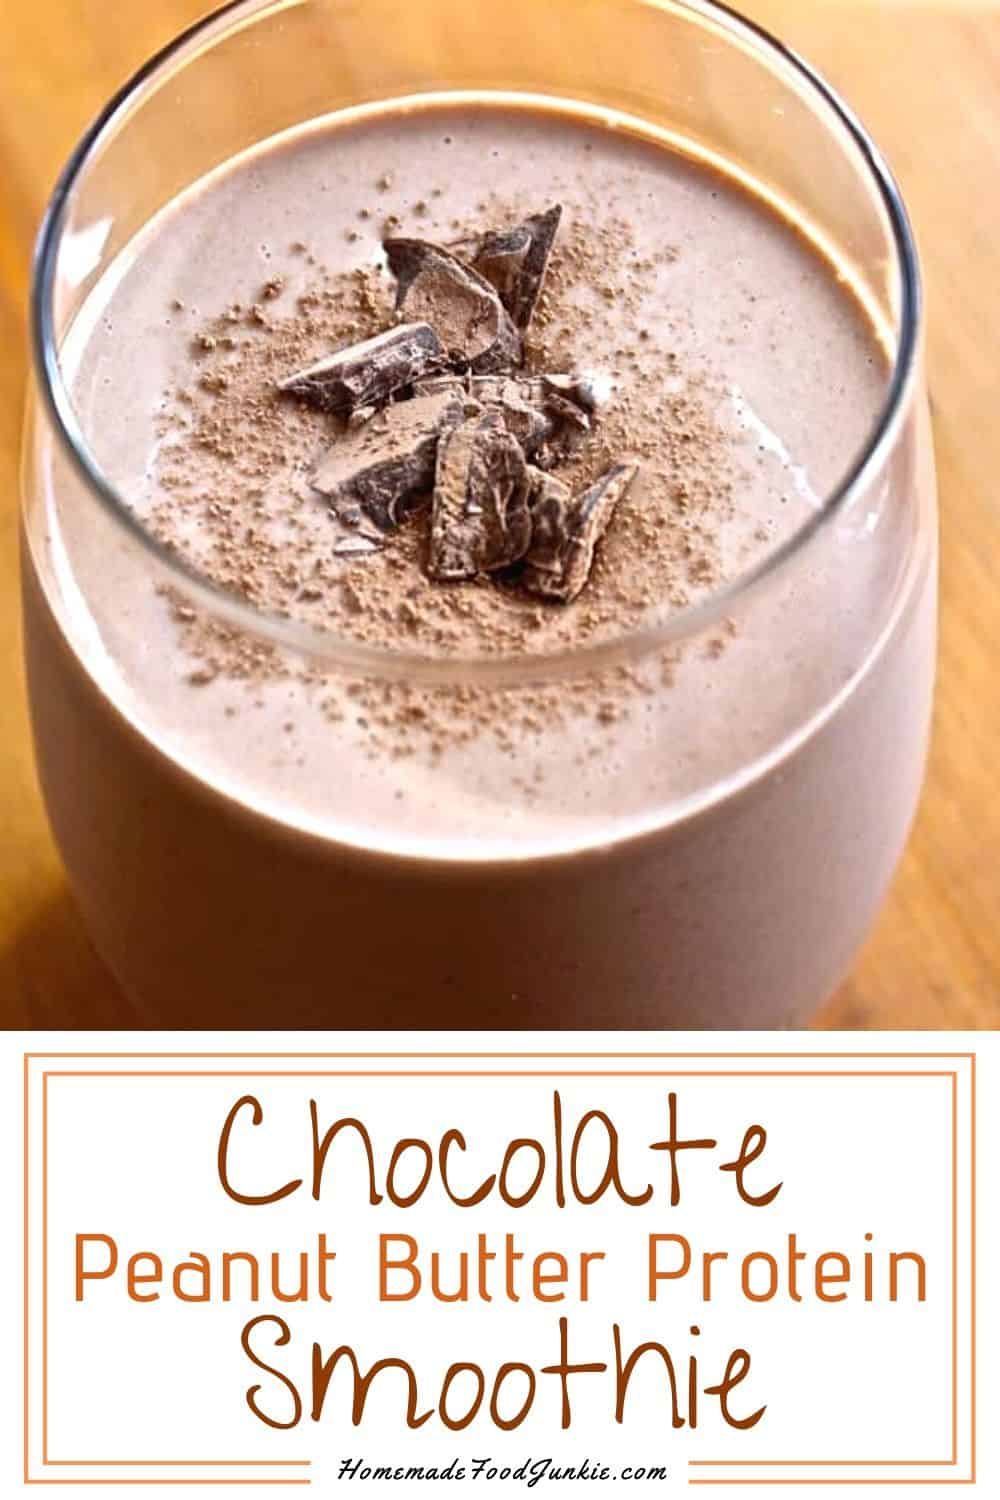 Chocolate peanut butter smoothie-pin image